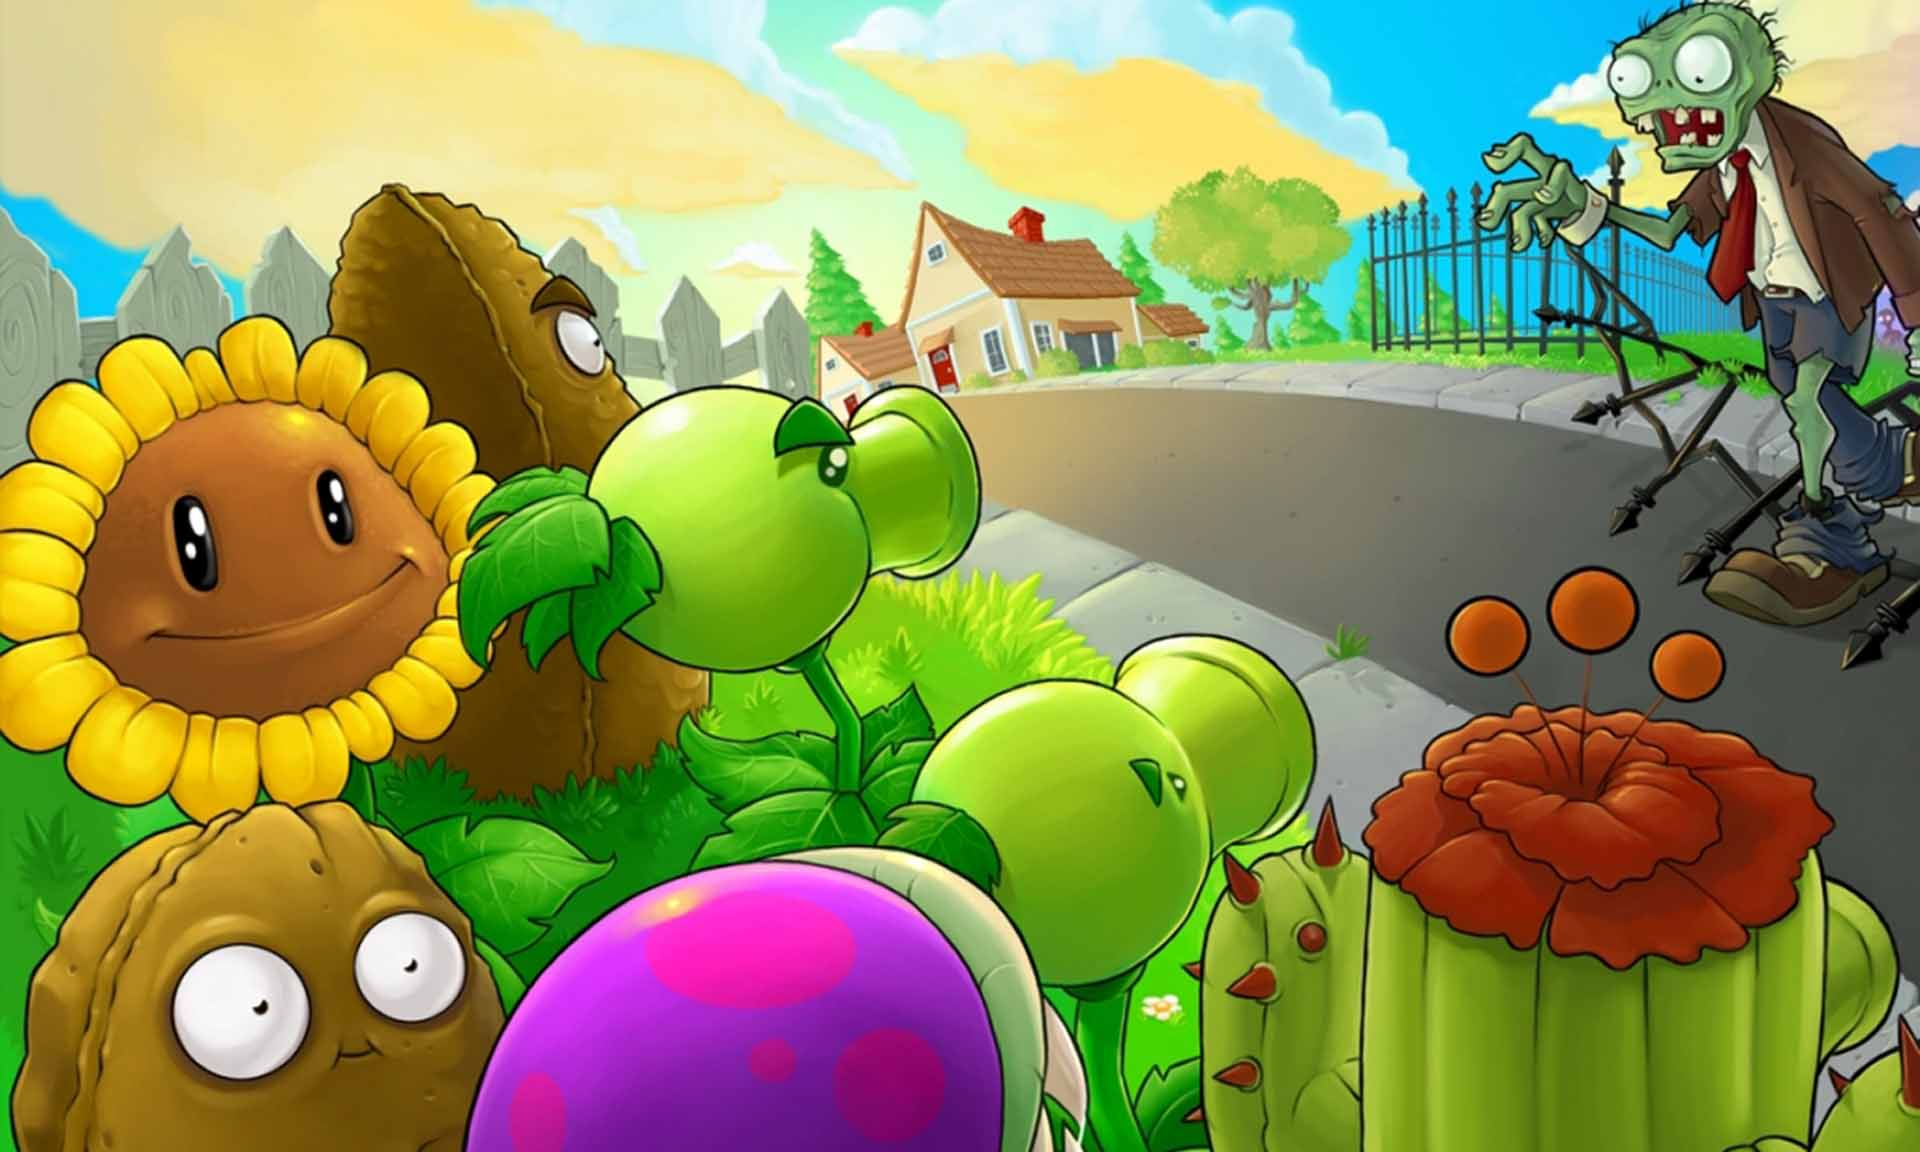 Plants Vs. Zombies 3 announc- oh for its a chuffing